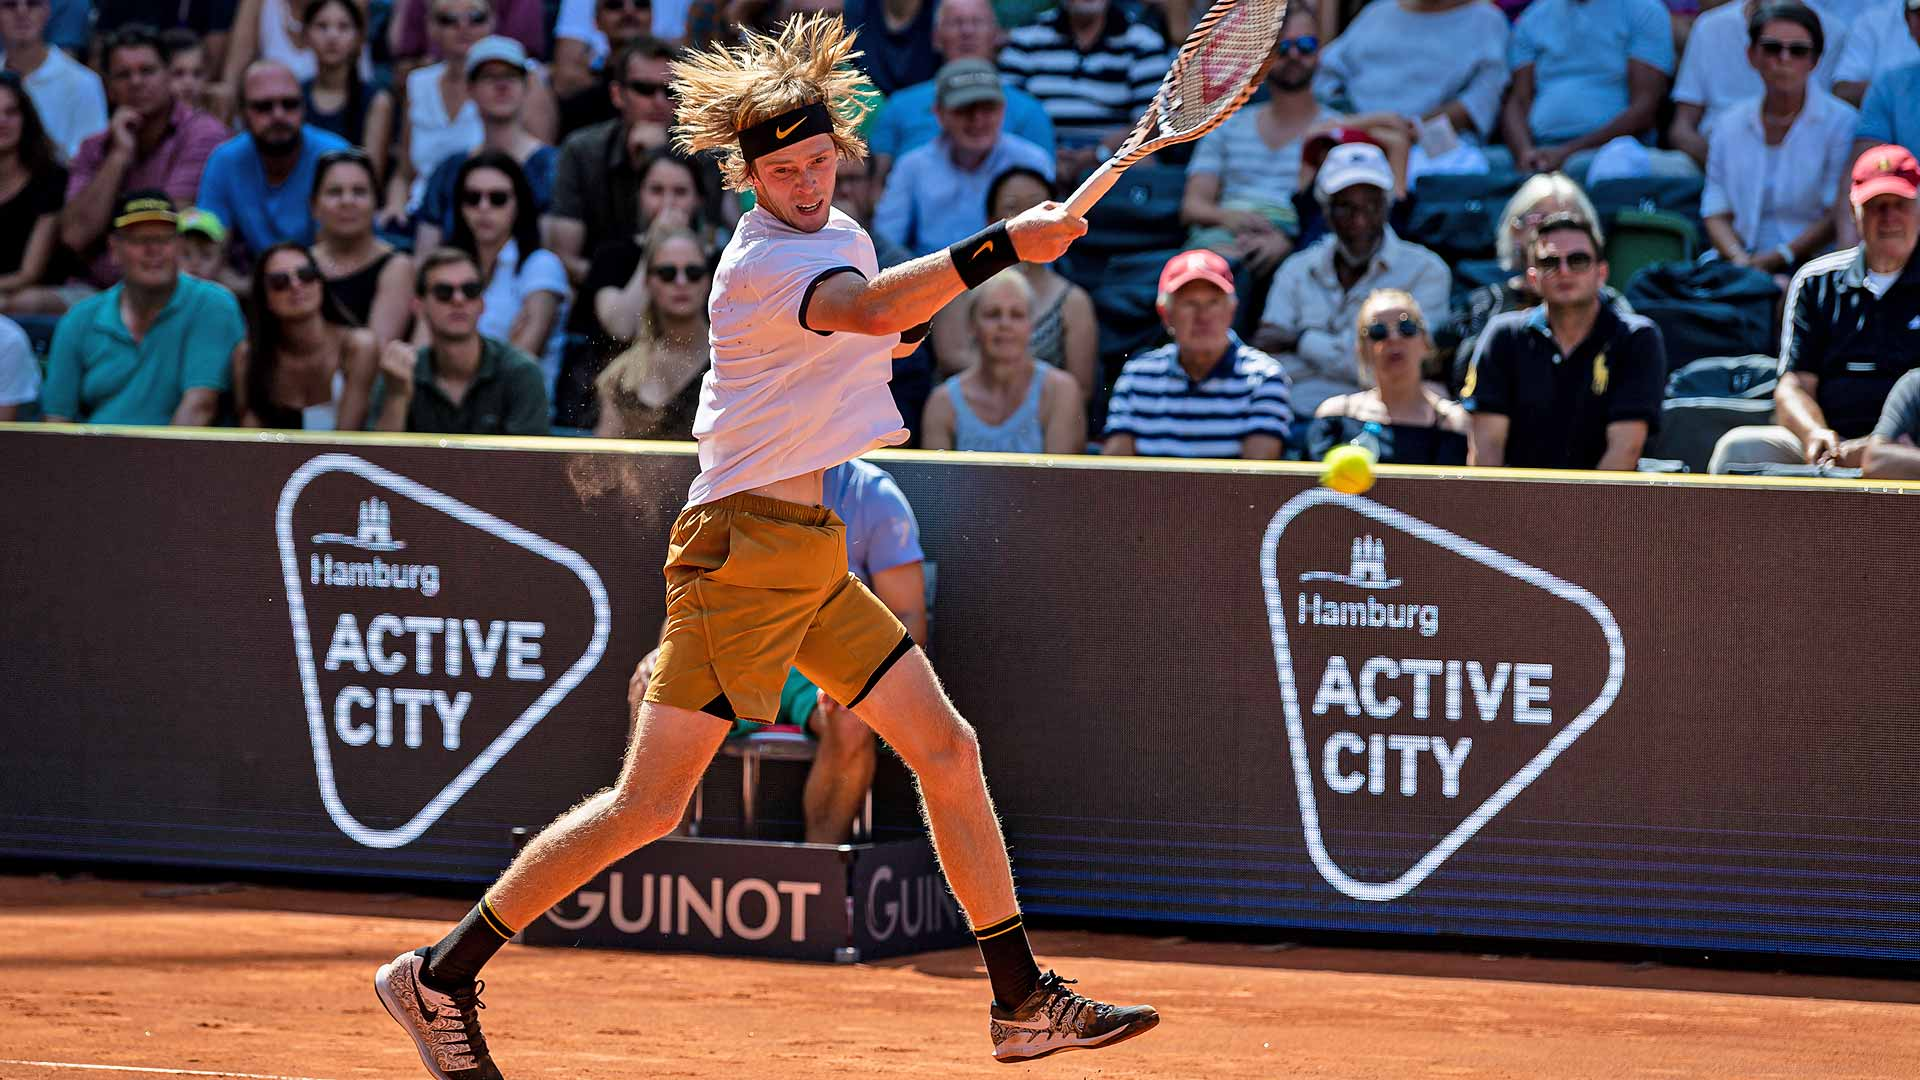 Rublev playing Tennis